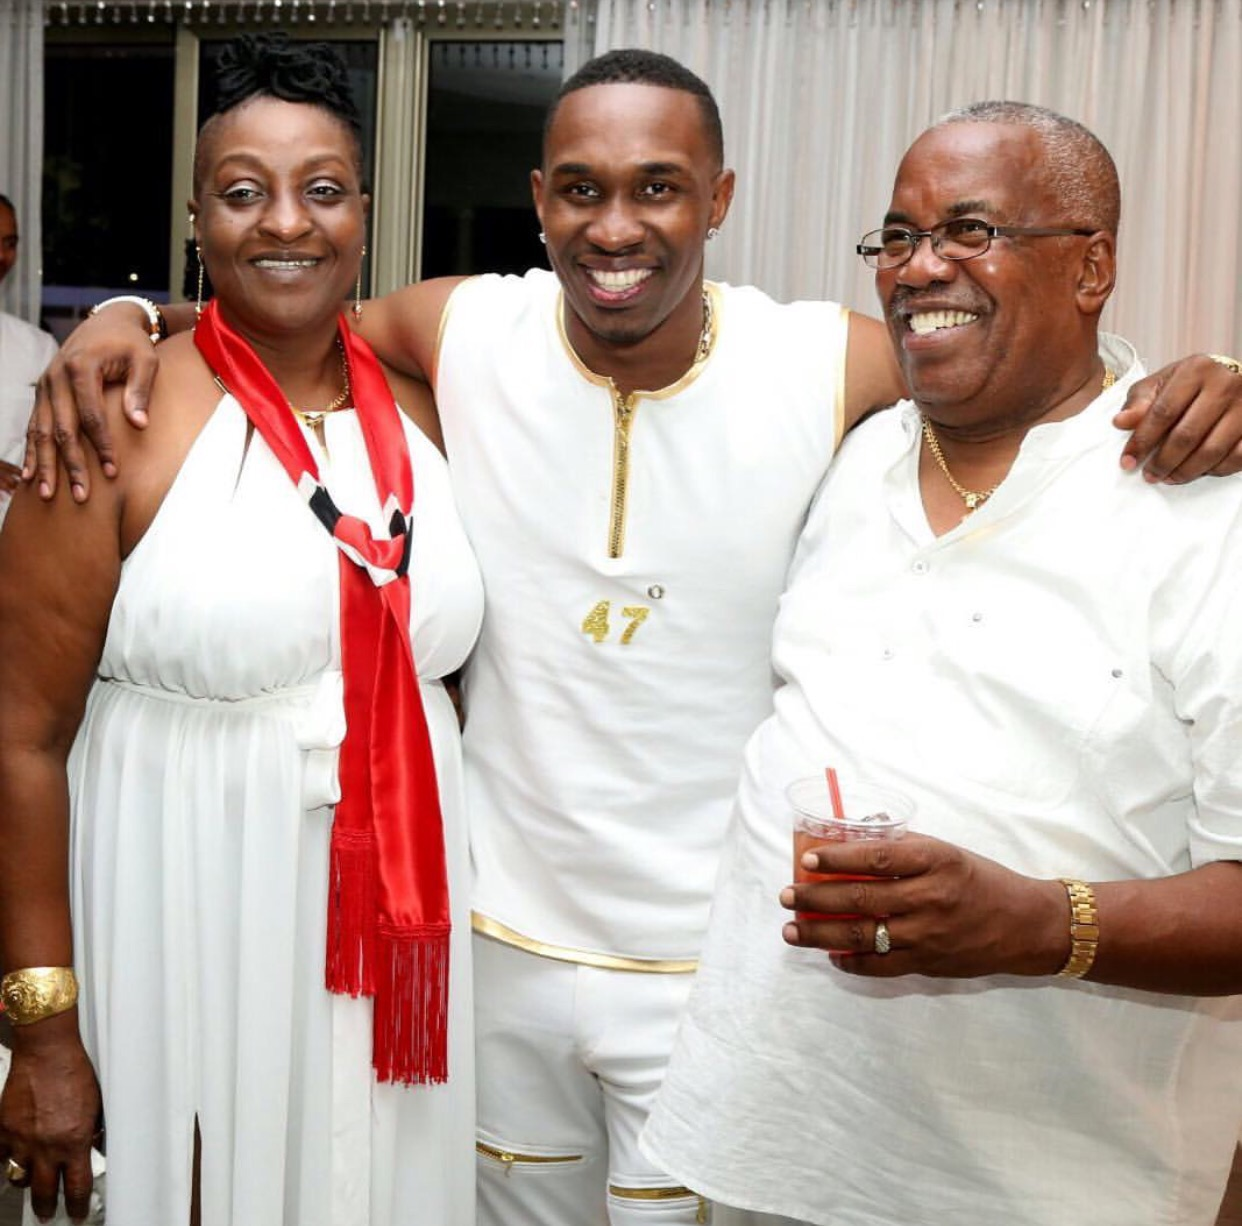 Dwayne-Bravo-Family-Photos-Father-Mother-Wife-Daughter-Age-Biography.jpg (1242×1226)